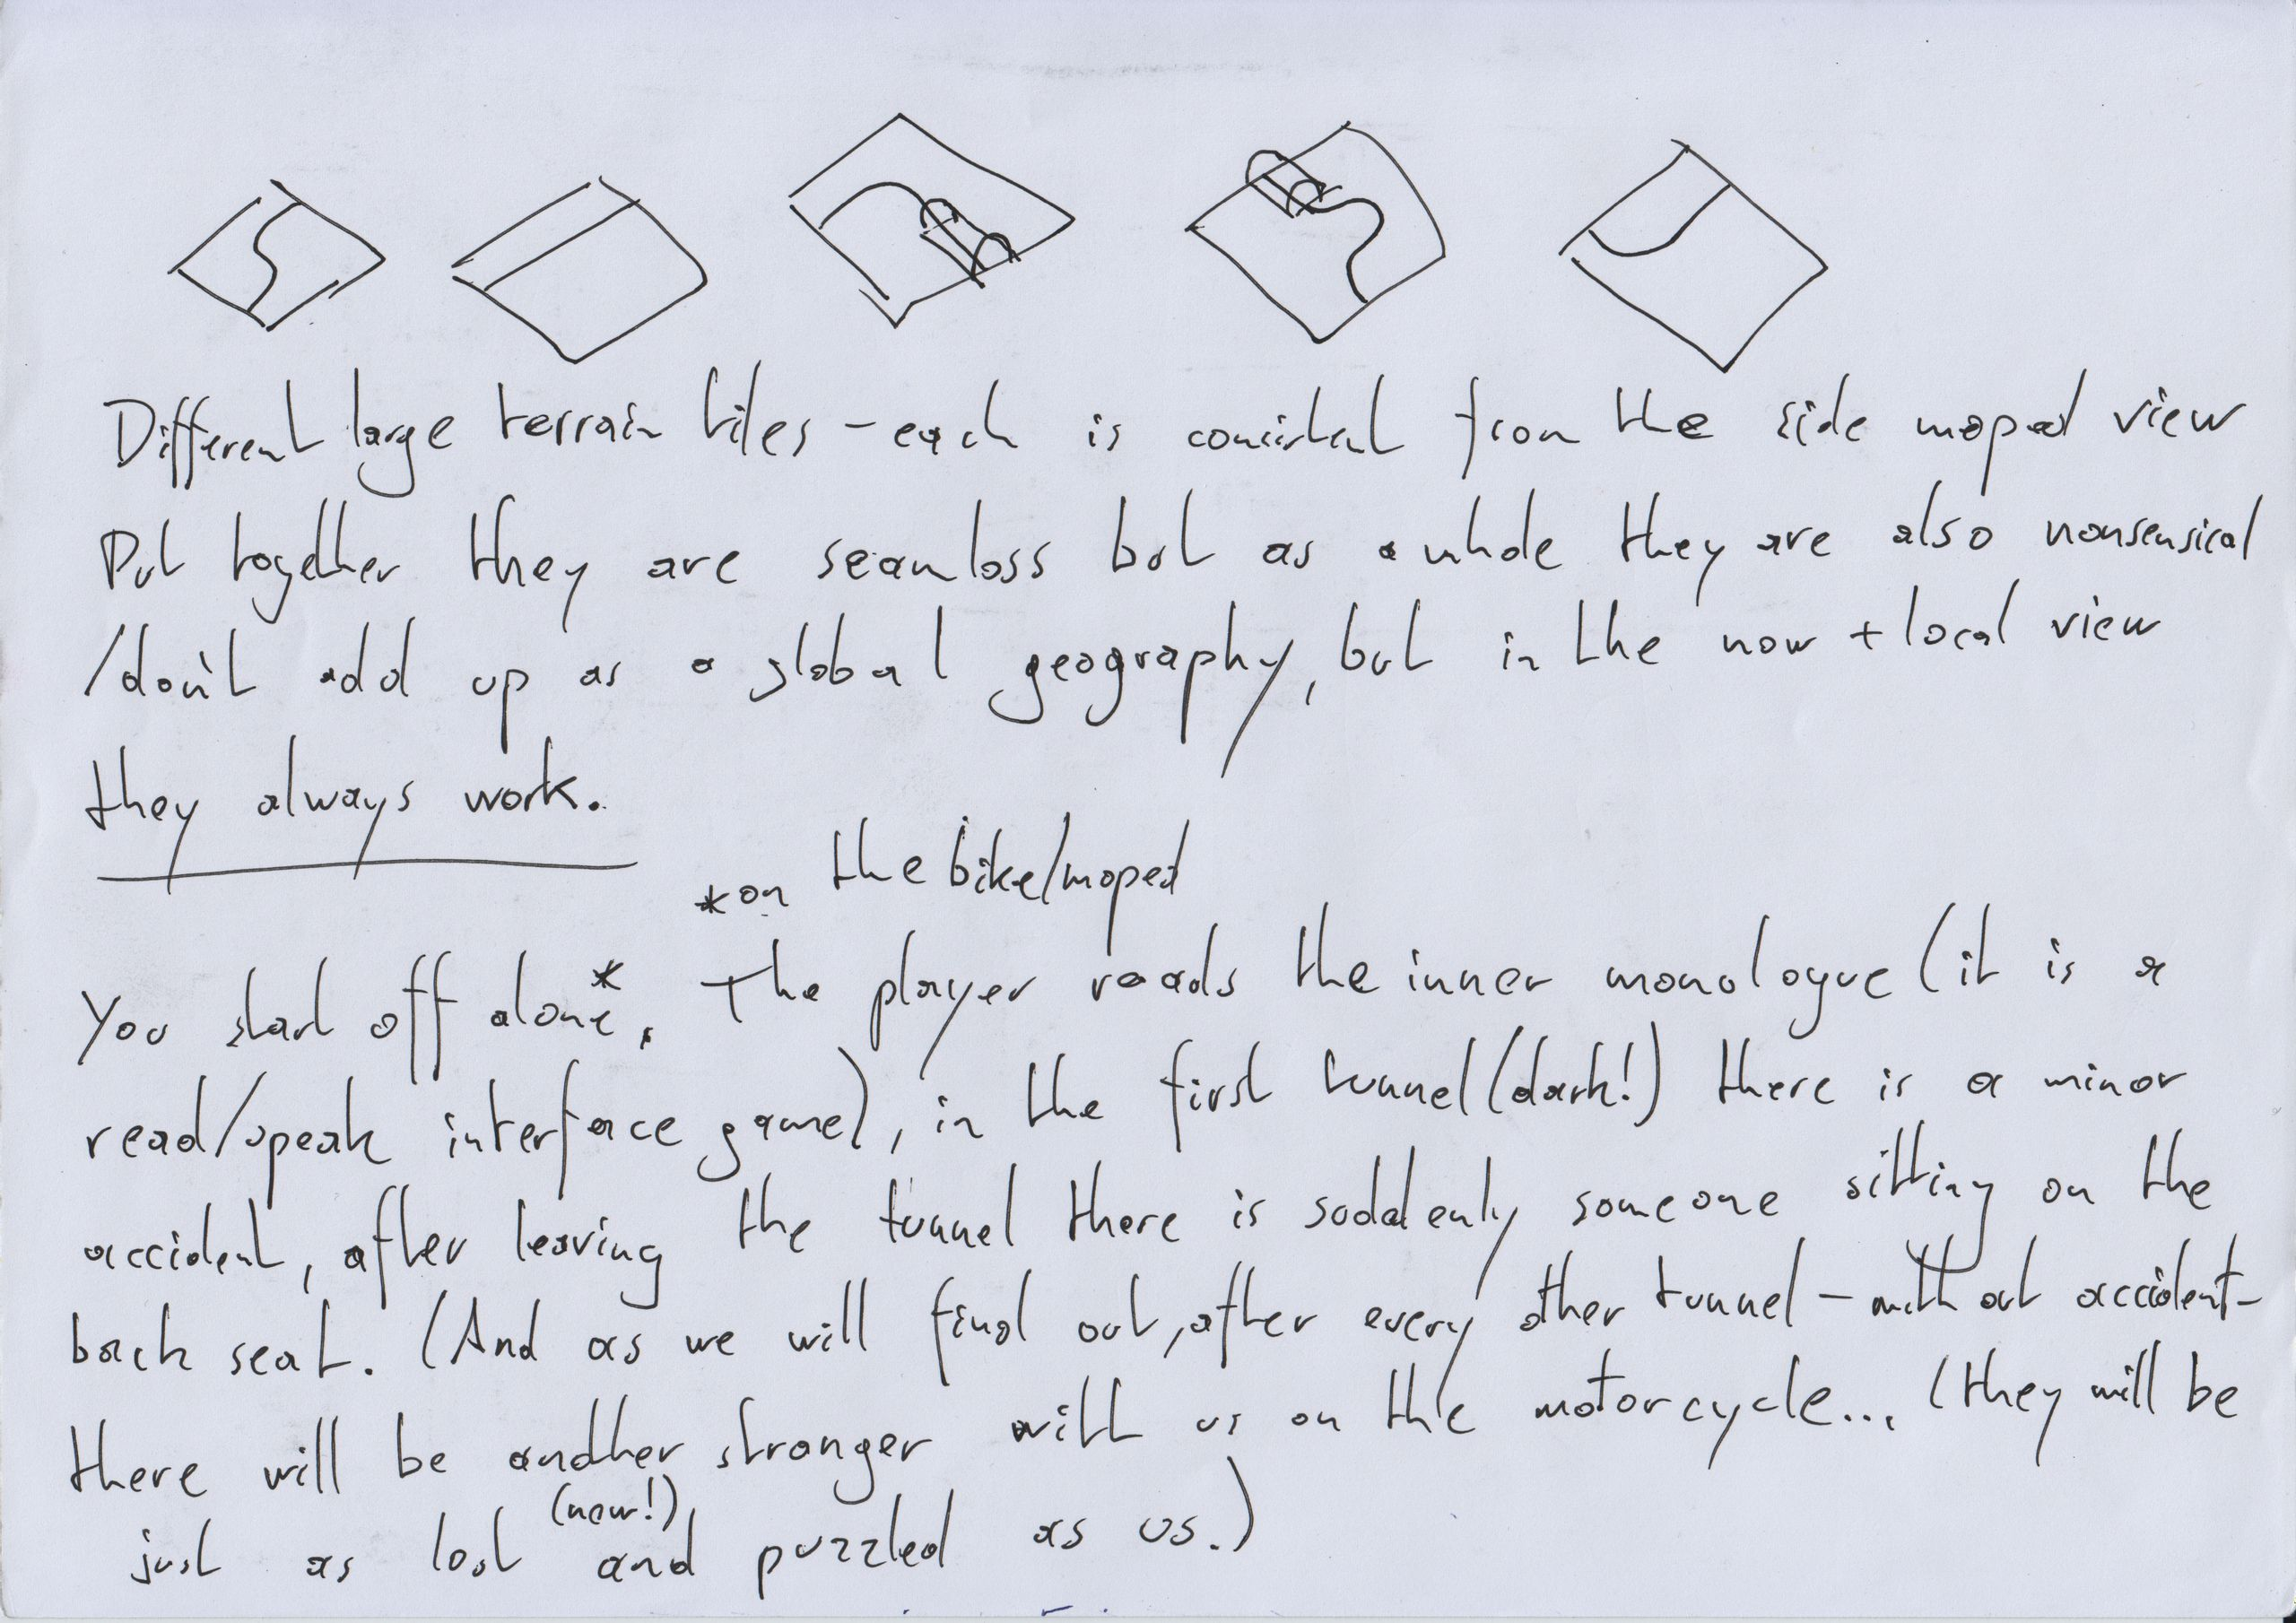 Scribbled notes on paper describing mechanics and story for a game